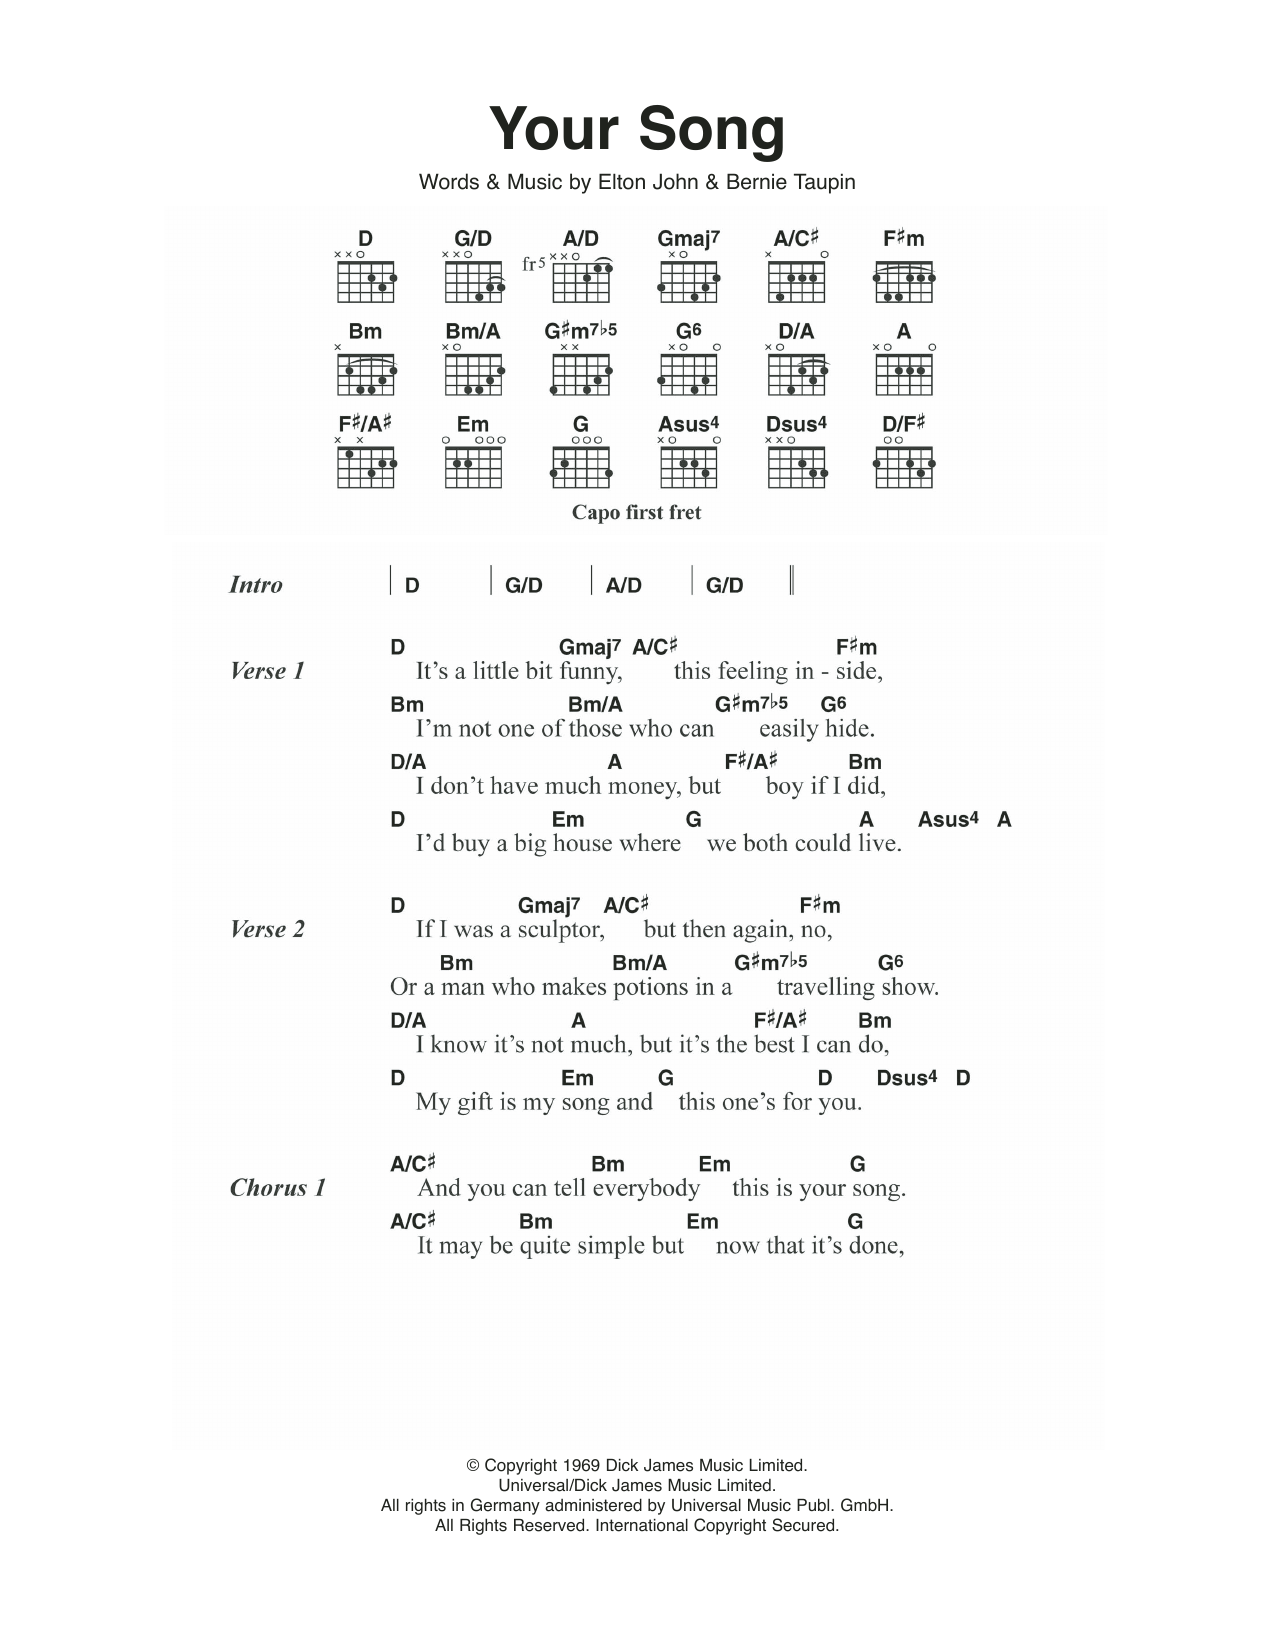 Your Song by Elton John - Guitar Chords/Lyrics - Guitar Instructor